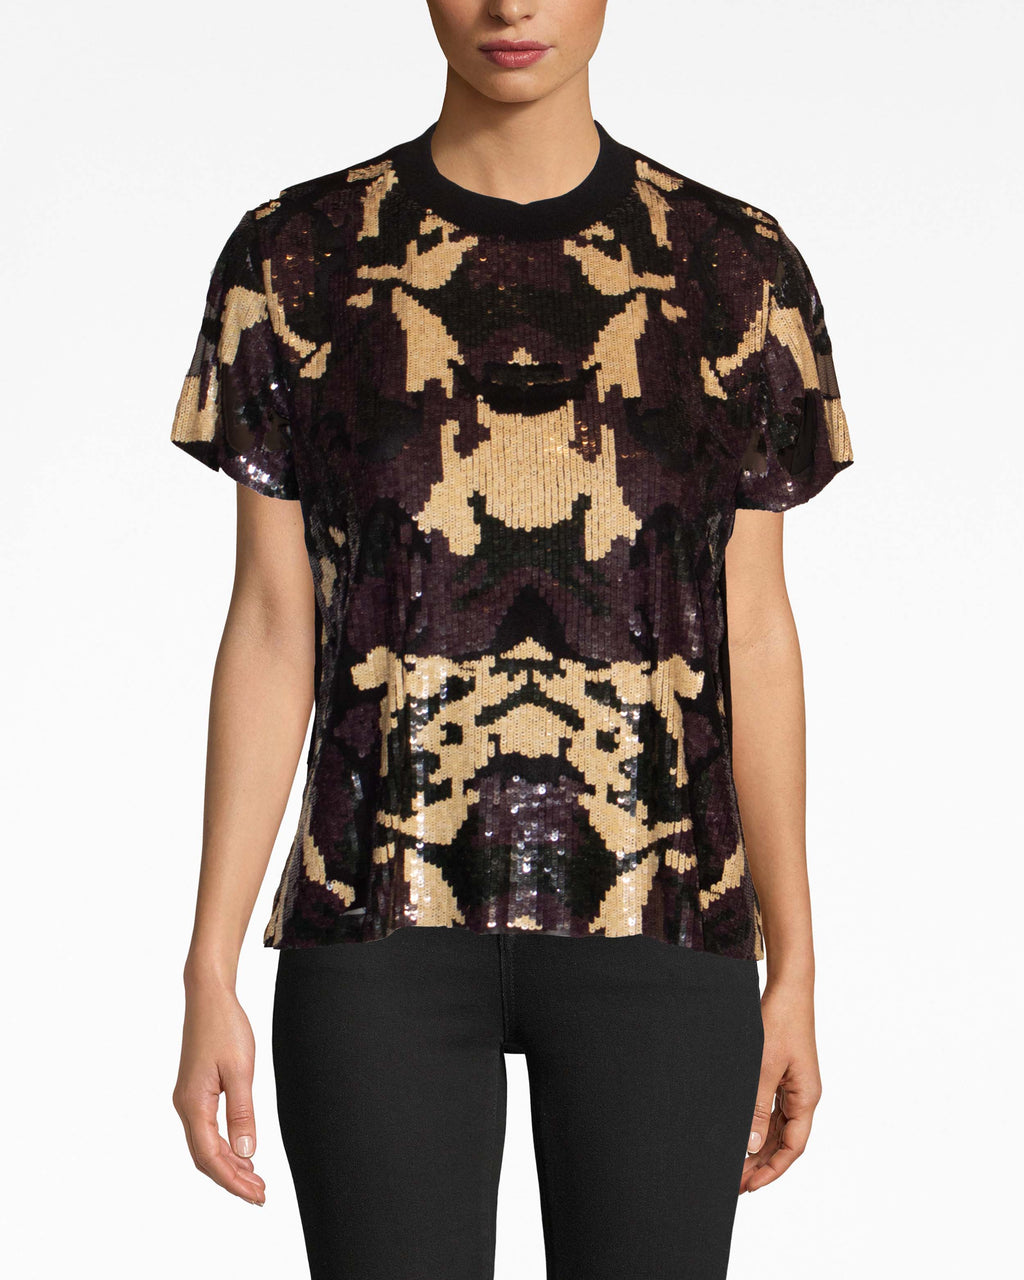 BH10452 - CAMOUFLAGE SEQUIN T-SHIRT - tops - shirts - Fashion week sequins. Straight from the Spring '19 runway, our camo sequin t-shirt fits comfortably and flounces at the hem. Pair with dark denim, a leather jacket, and booties.